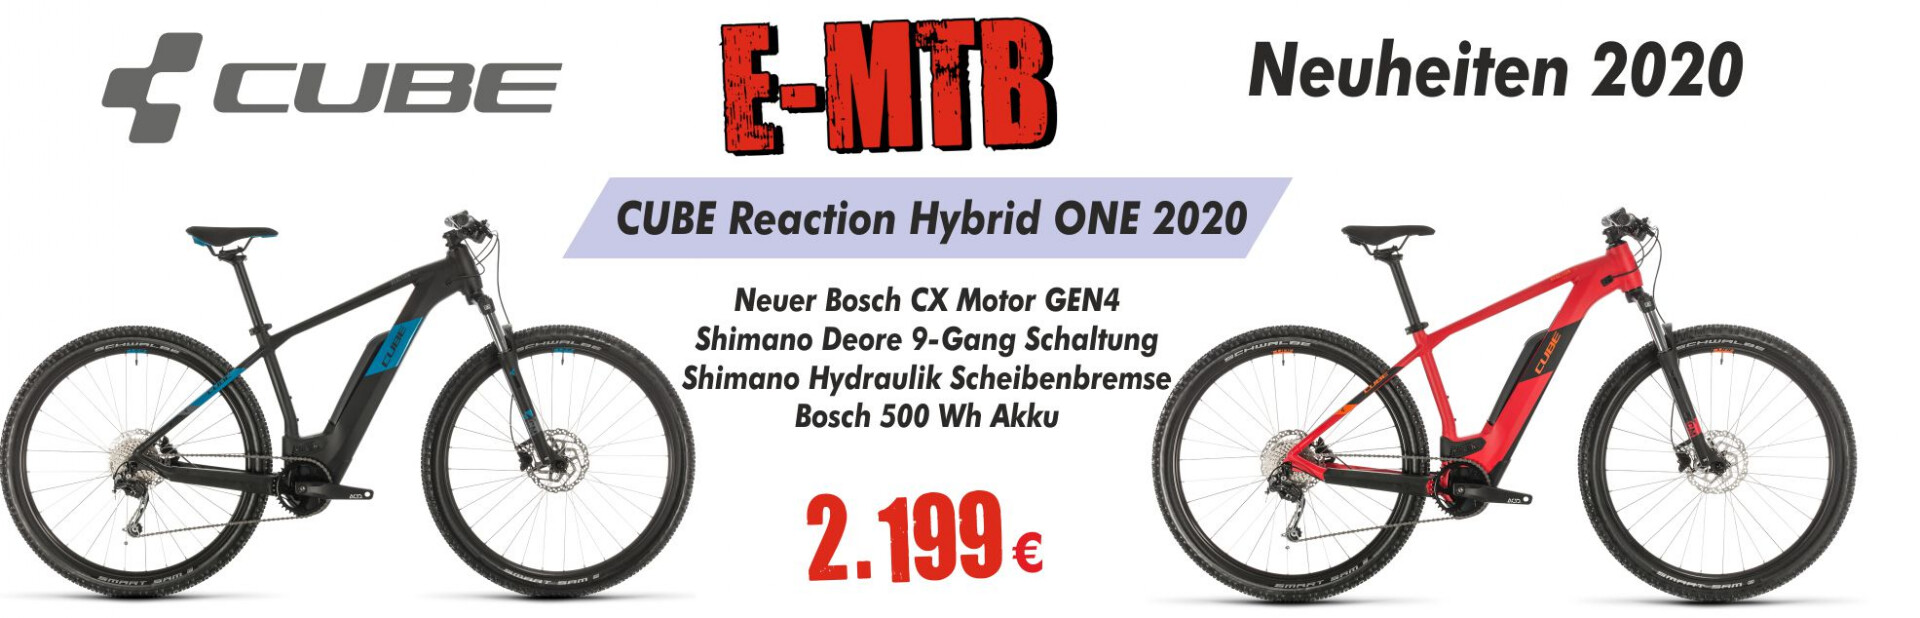 CUBE Reaction Hybrid ONE 2020